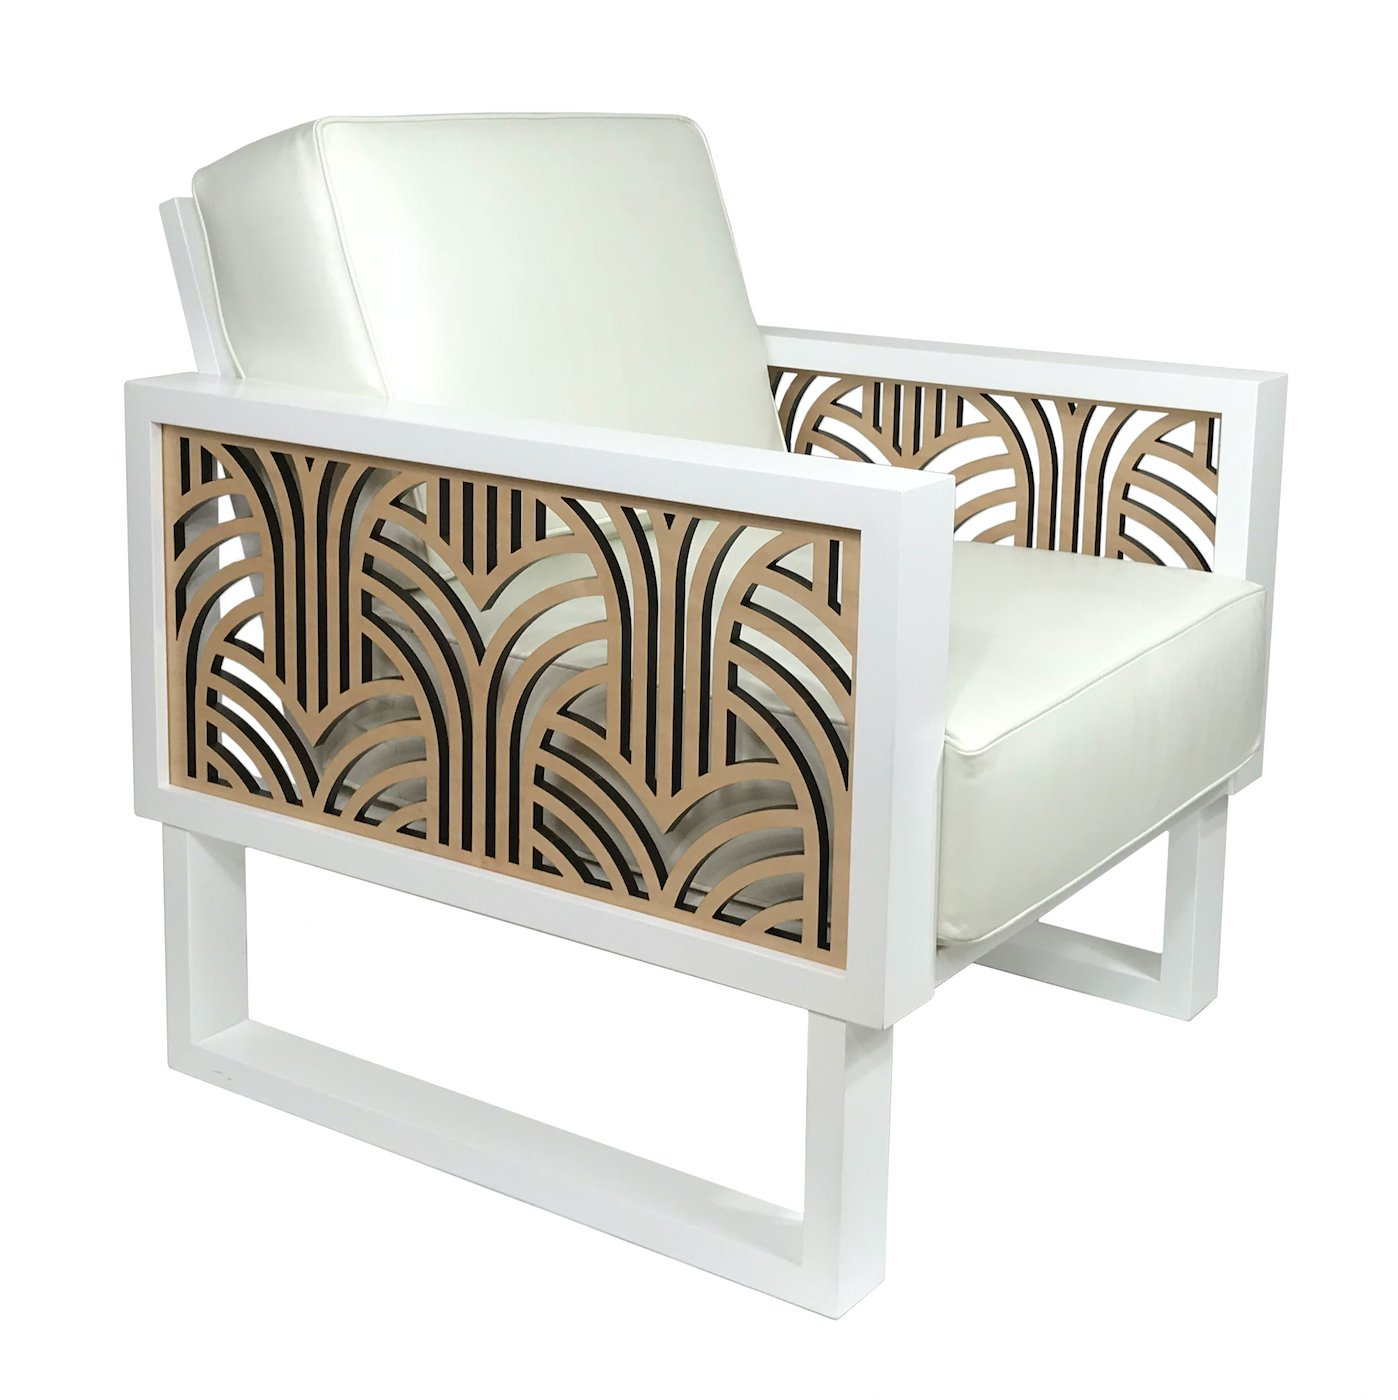 Terrific Art Deco White Leather Lounge Chair Spiritservingveterans Wood Chair Design Ideas Spiritservingveteransorg